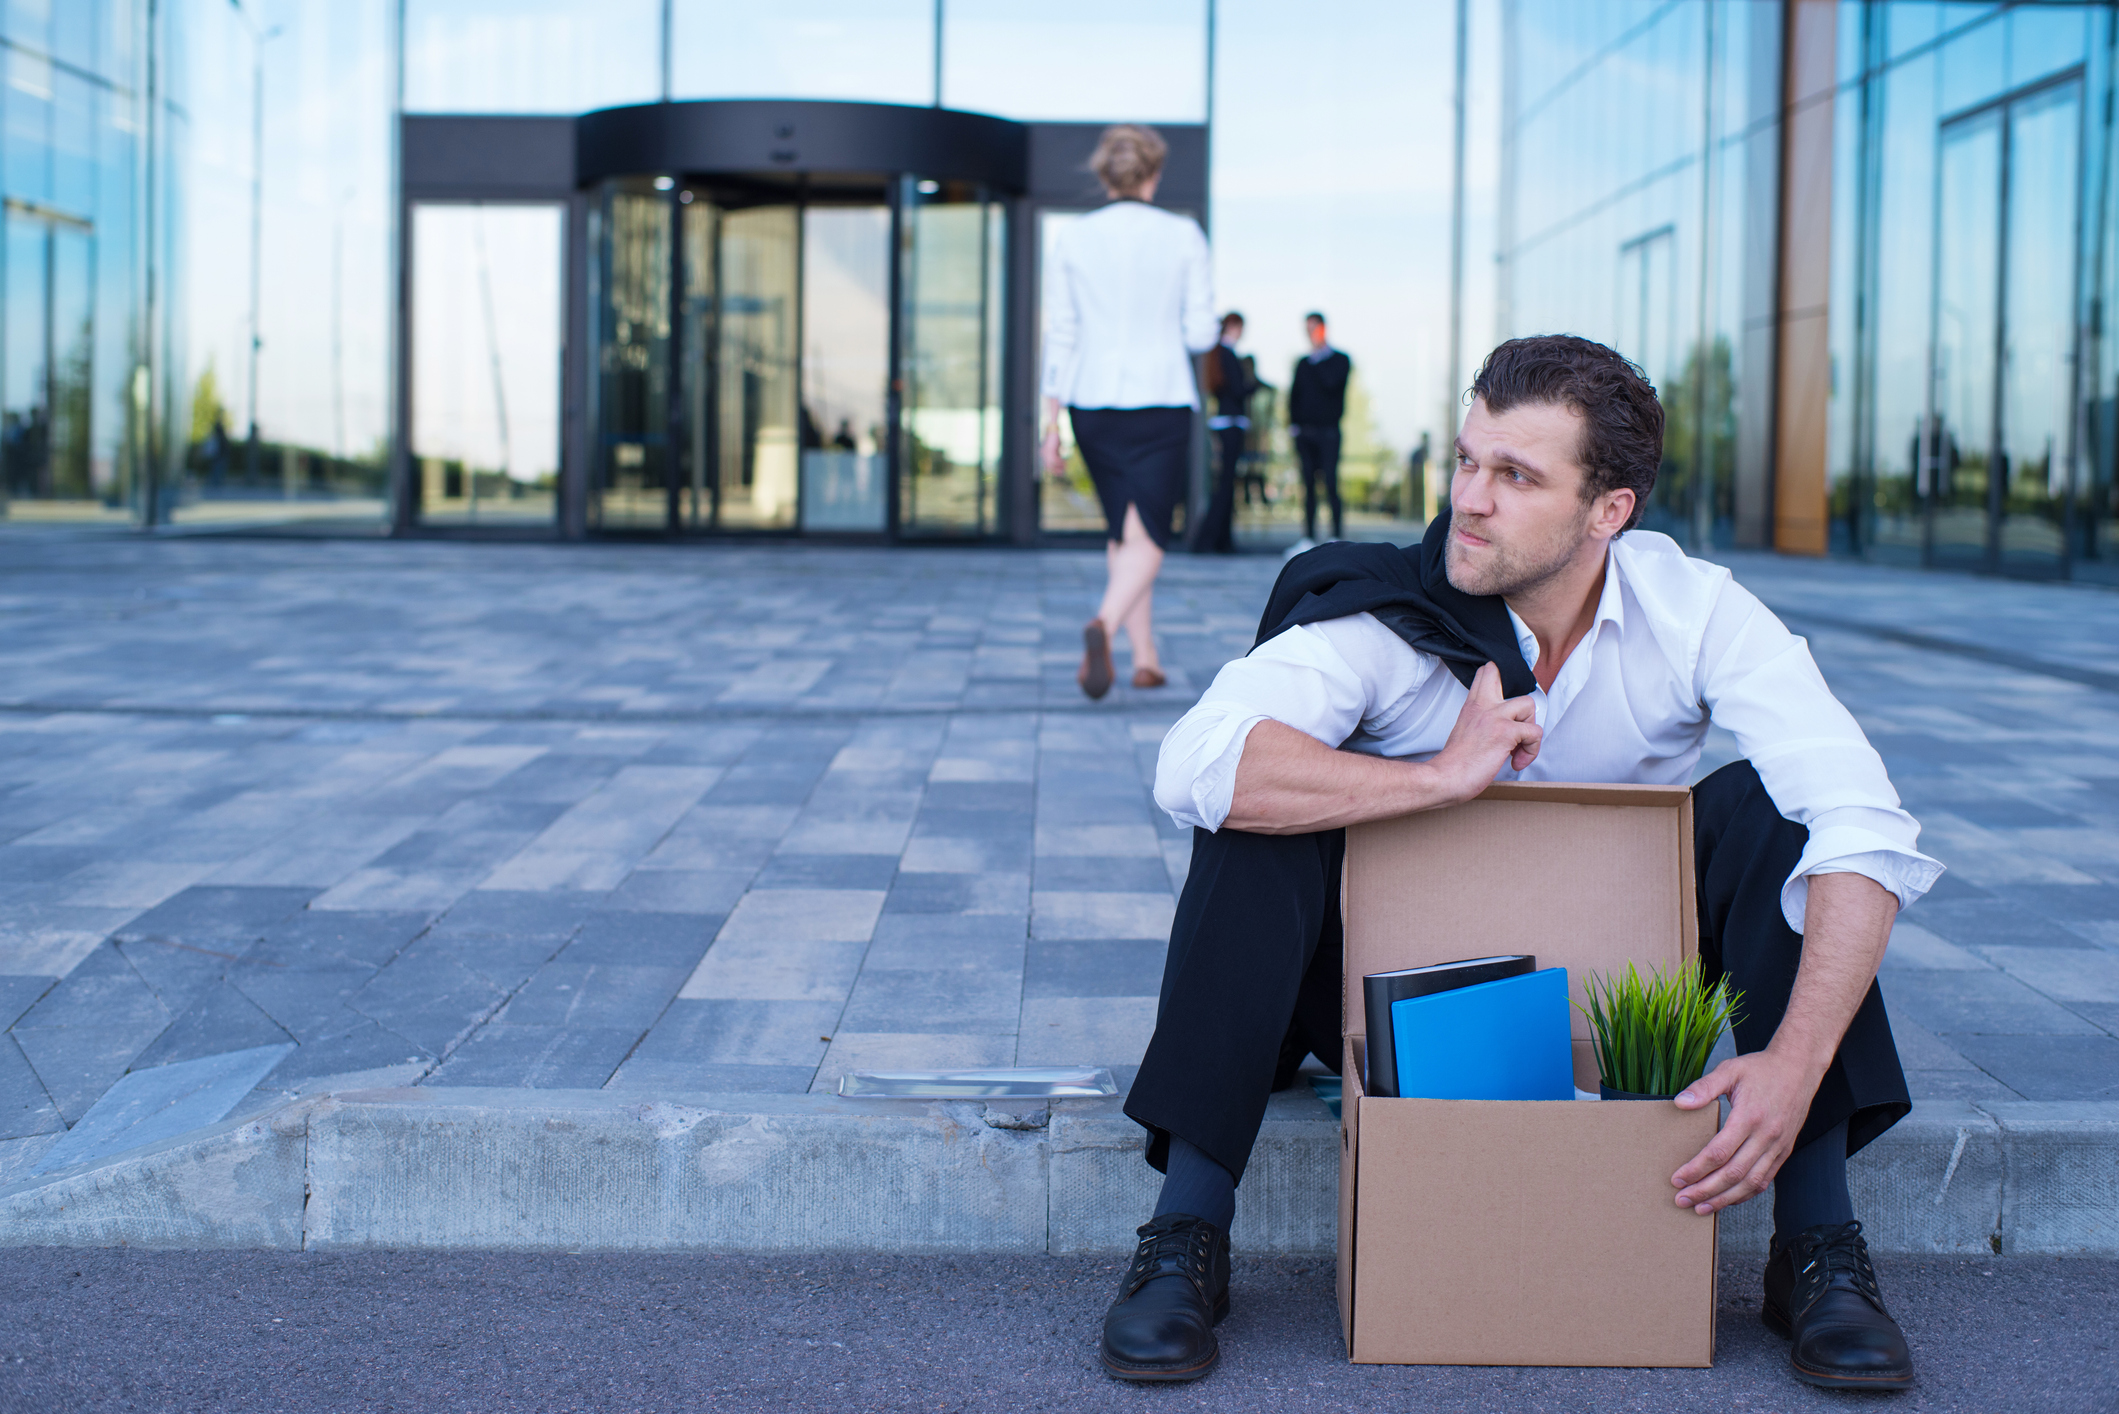 Fired business man sitting frustrated and upset on the street near office building with box of his belongings.